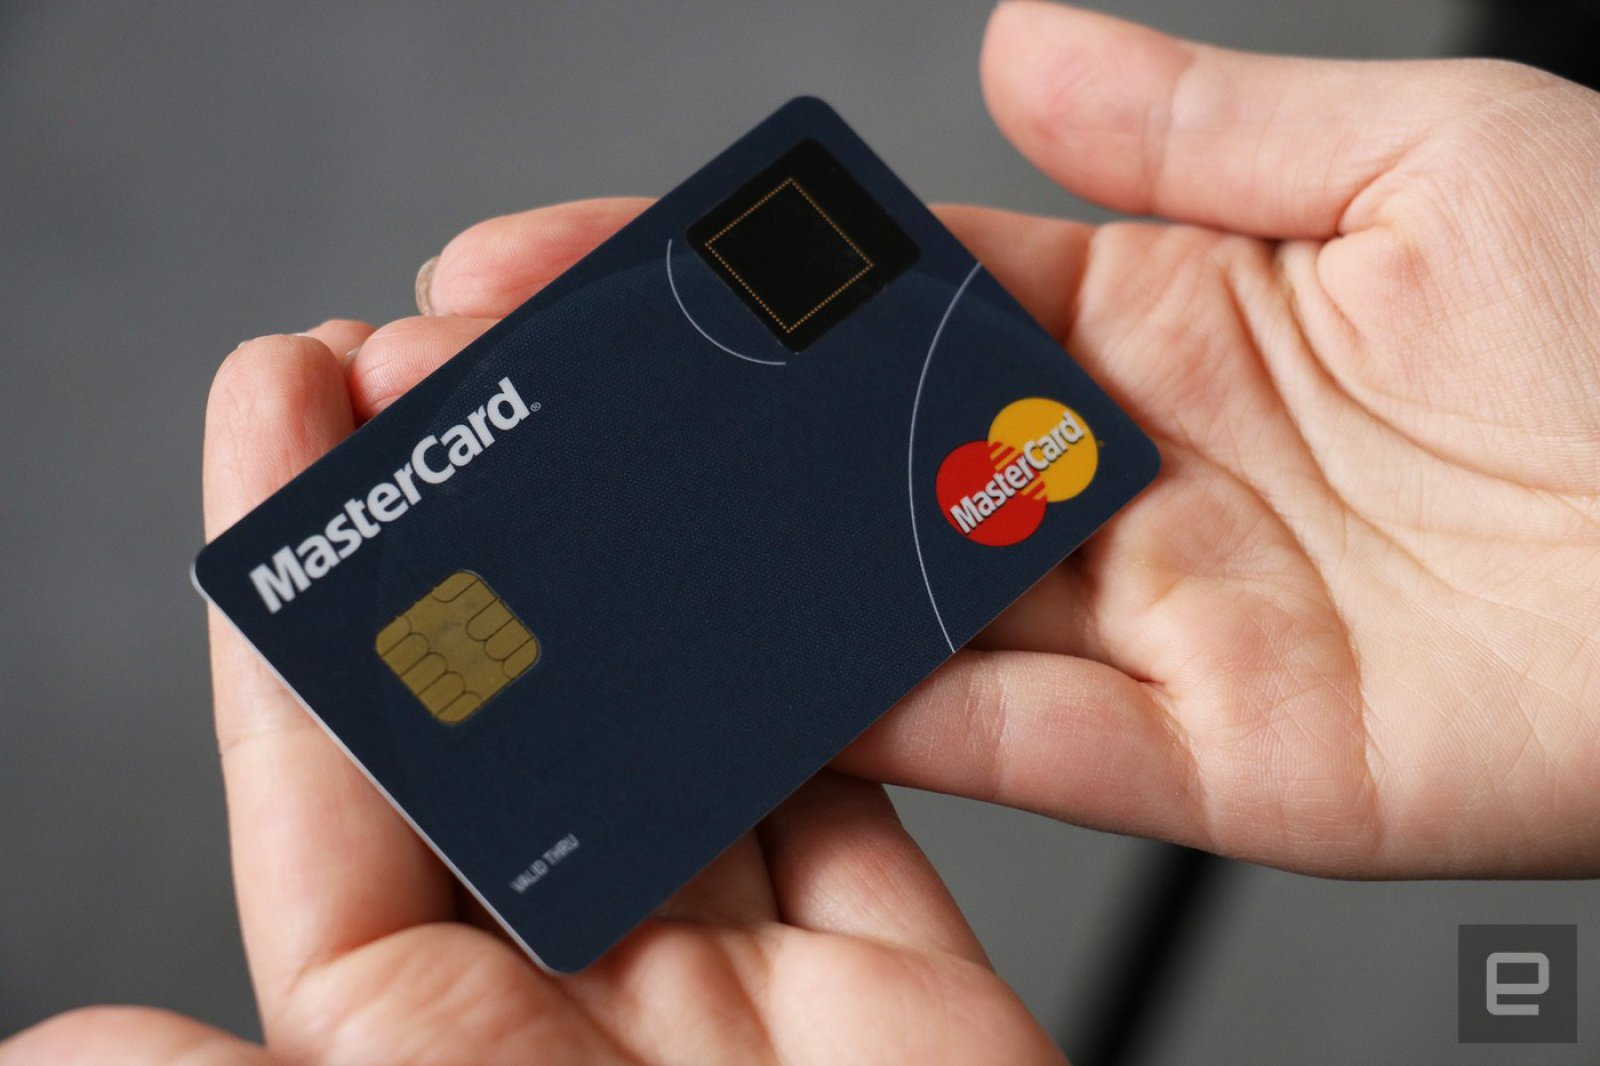 Mastercard Introduces Credit Card With Fingerprint Scanner